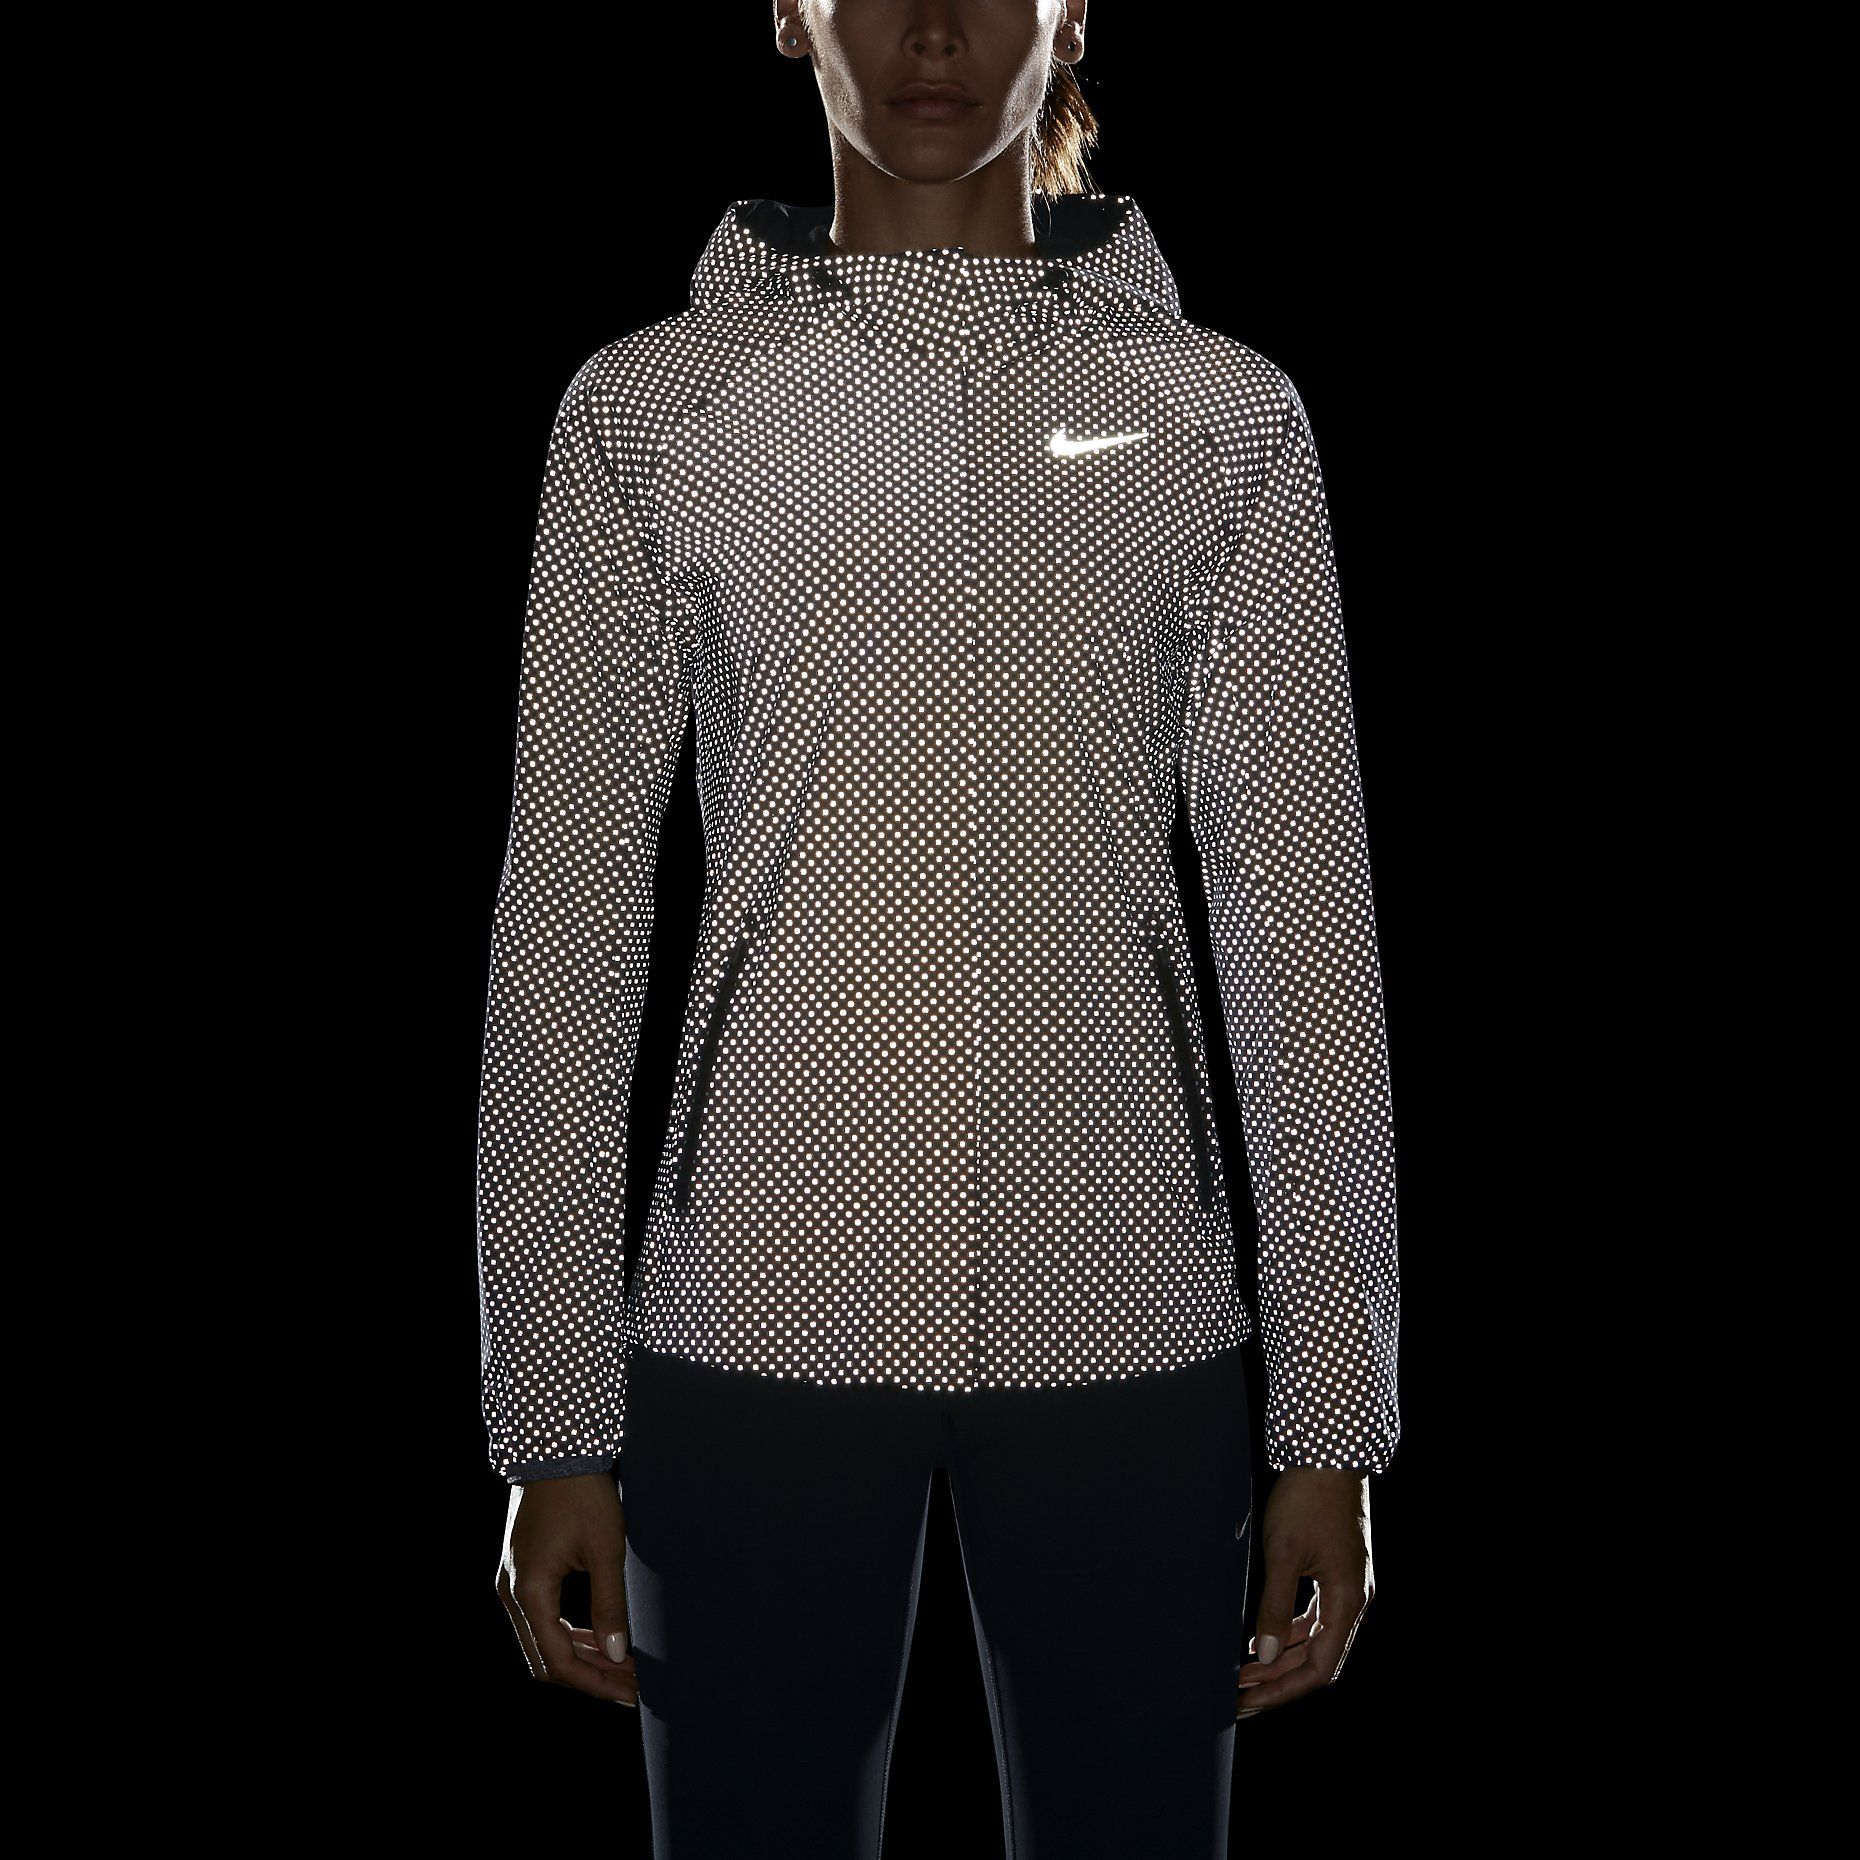 5e25f770ad22 Nike Shield Flash Max Women s Running Jacket. Nike Store UK. Expensive but  pretty amaze for winter runners!